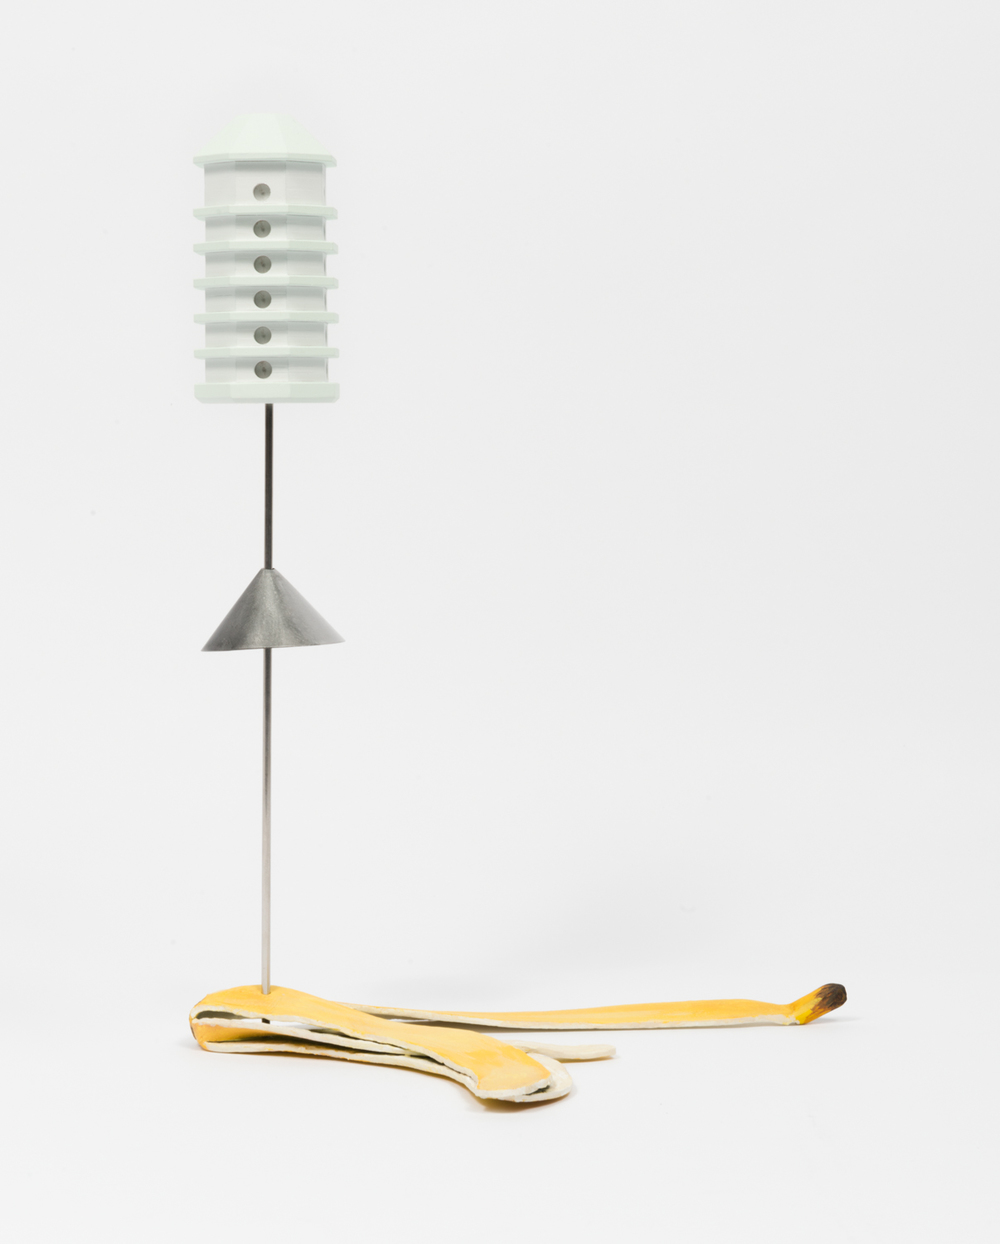 Chris Bradley  Banana Peel w/ Birdhouse  2016 Steel, stainless steel, wood, acrylic paint, and hardware 13h x 10w x 6d in CB185